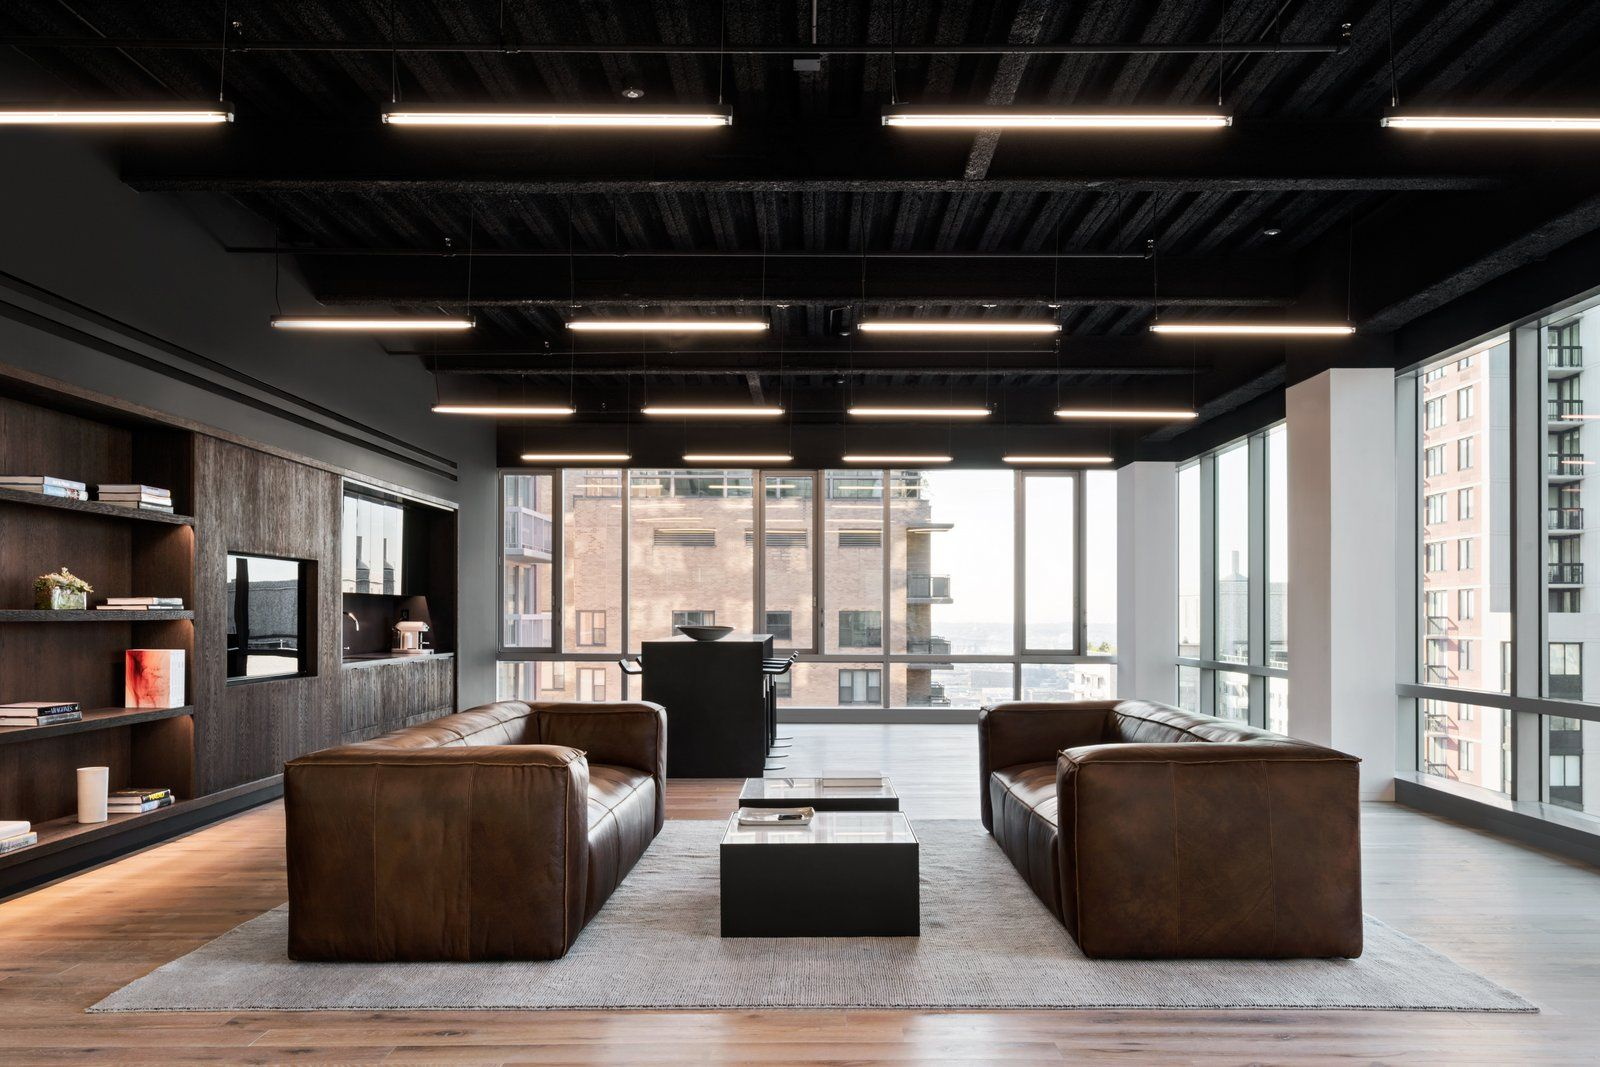 Tewes design nyc executive office seattle interior design - Office Snapshots Discover Worldwide Office Design